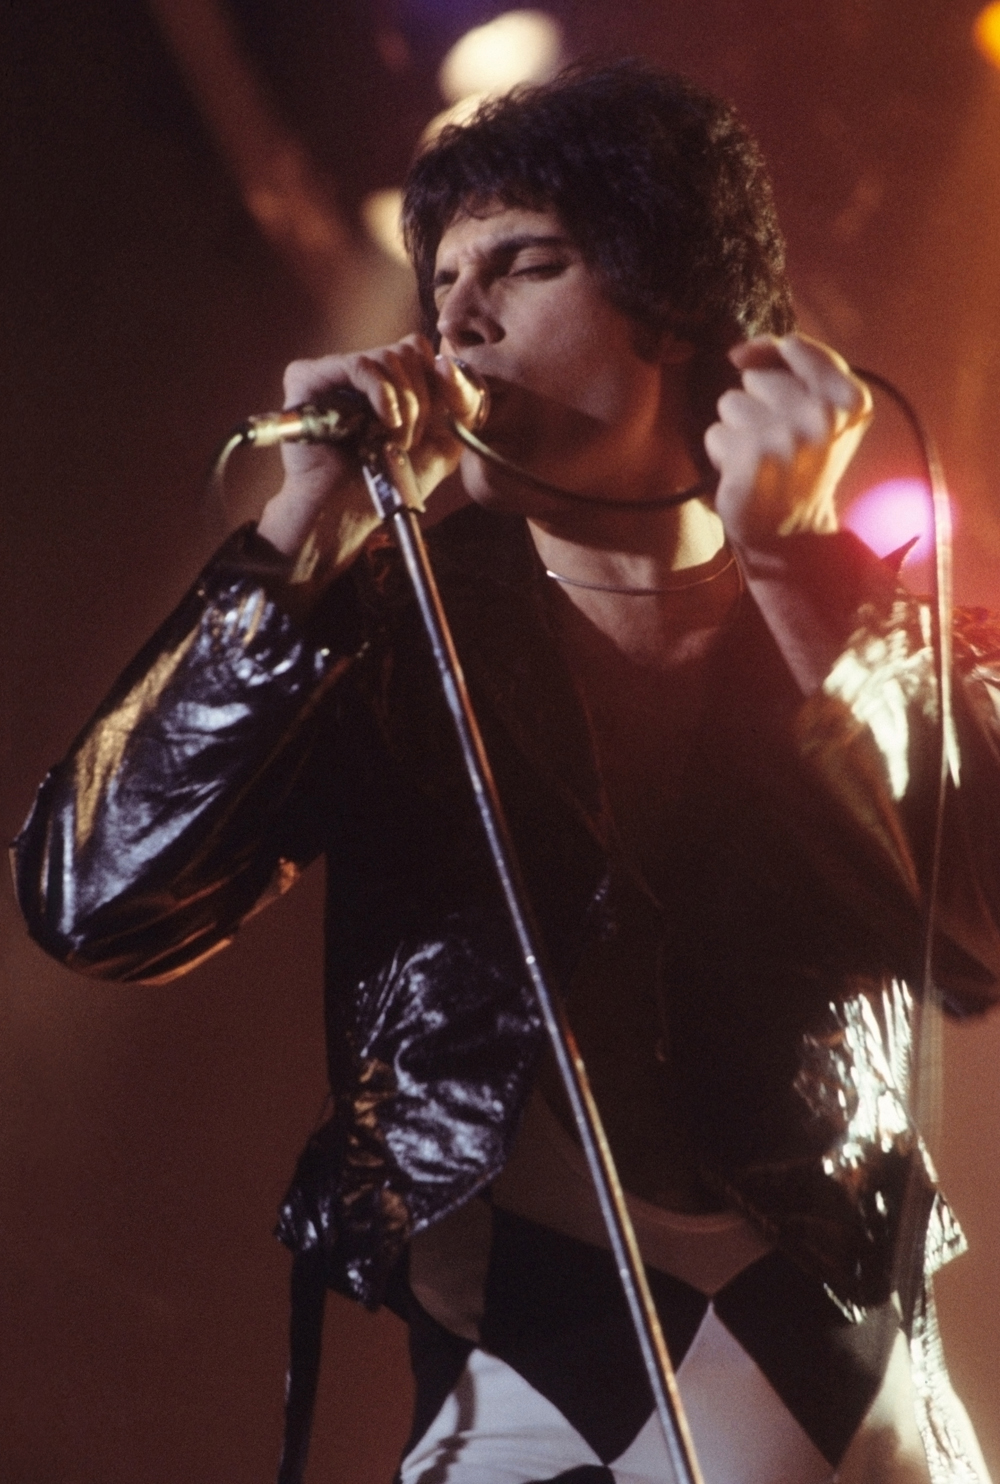 Freddie Mercury led Queen into musical glory with countless powerful rock ballads that may have evolved from a very familiar instrument. Credit: Carl Lender.